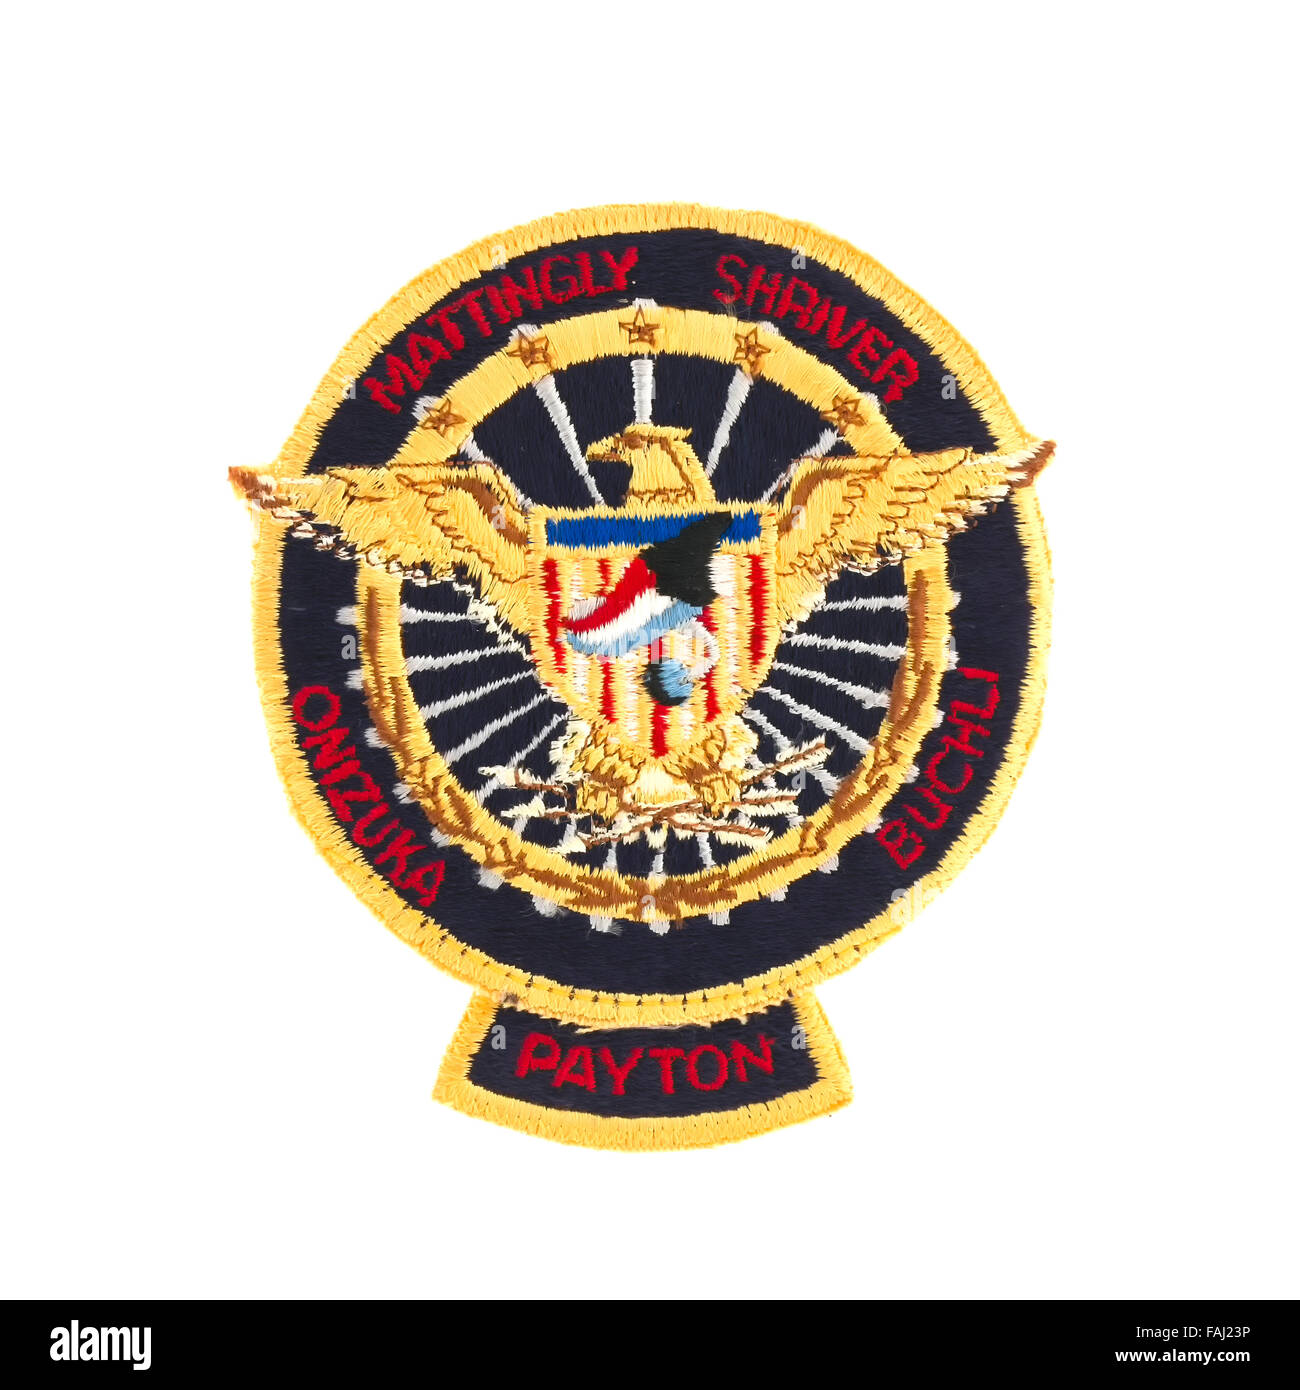 Mission Badge from the STS-51 Space Shuttle Flight on a white background - Stock Image